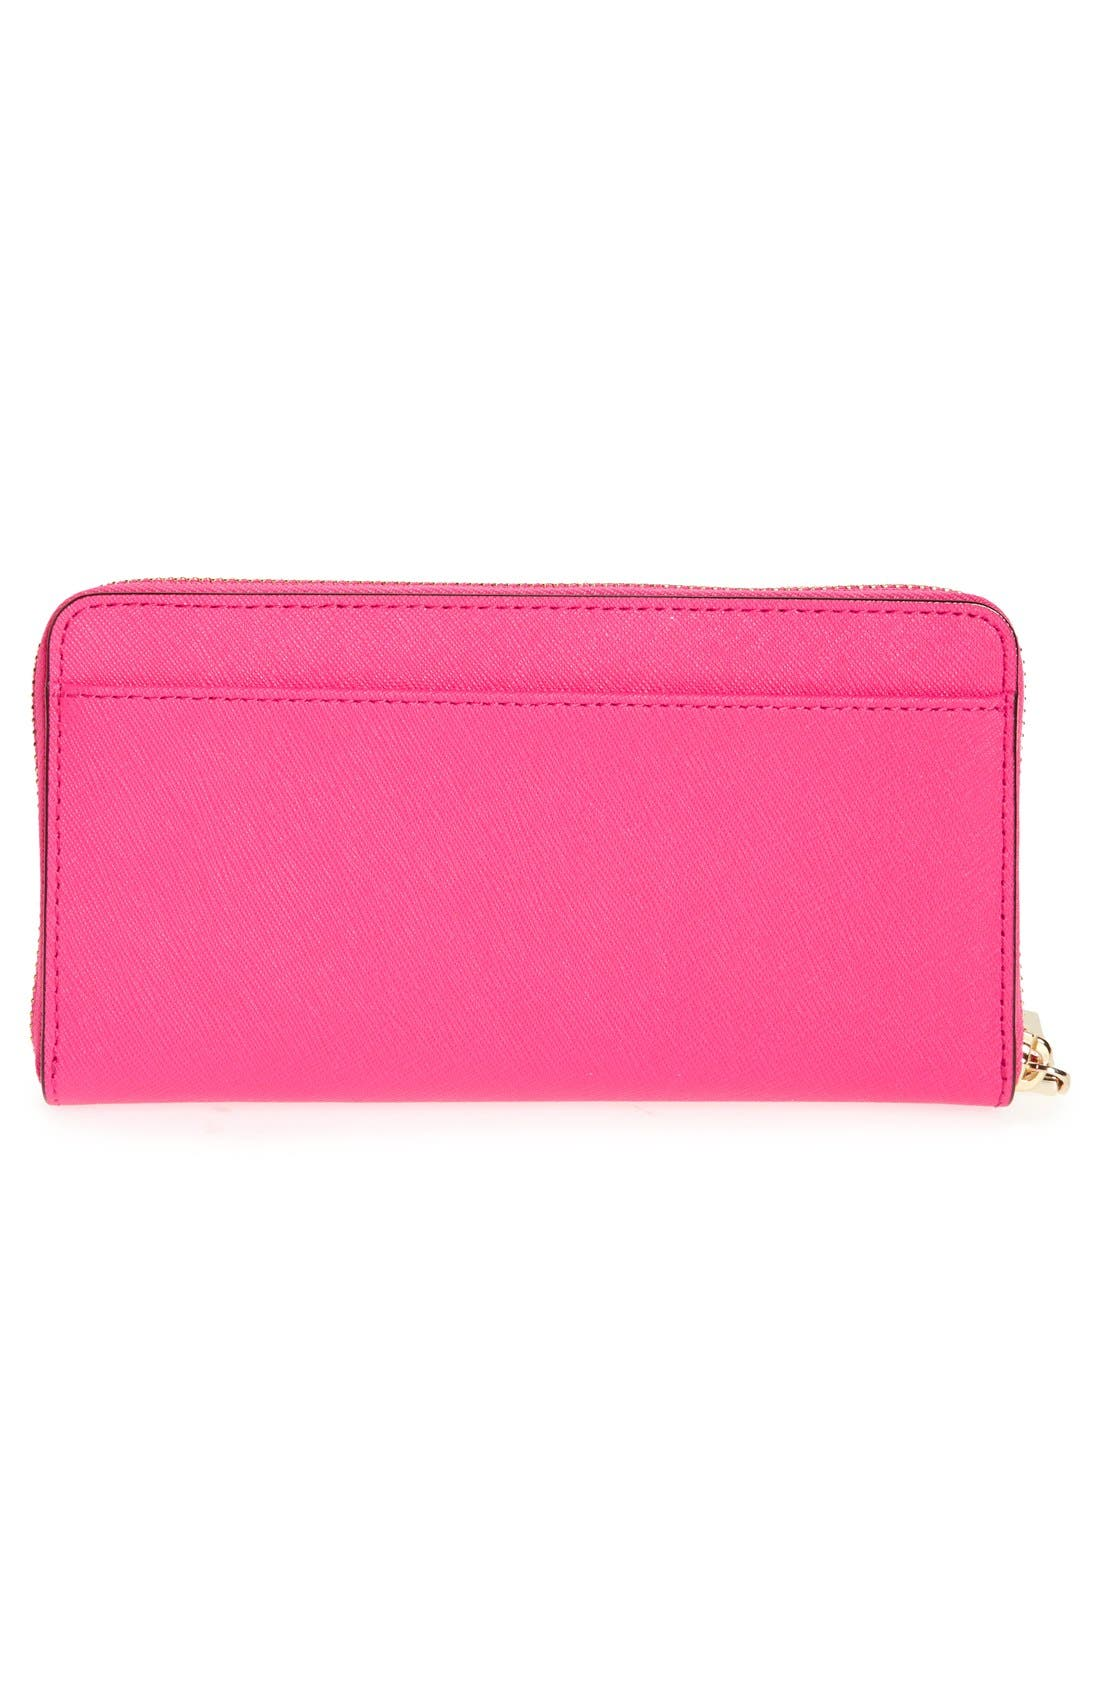 'cameron street - lacey' leather wallet,                             Alternate thumbnail 101, color,